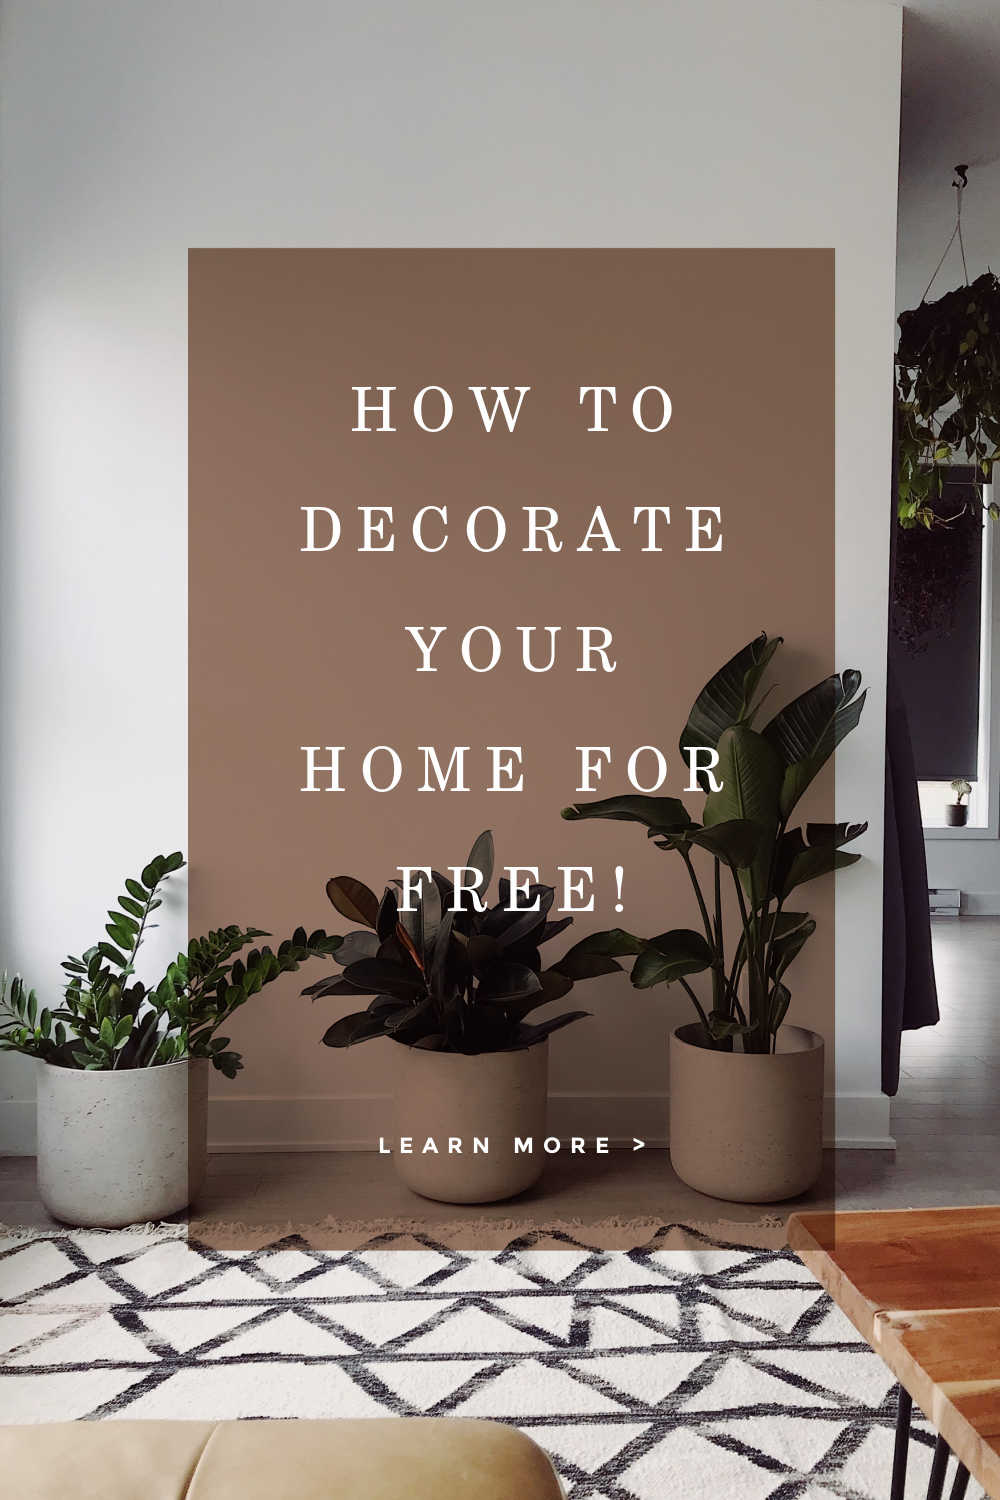 DECORATE HOME FREE